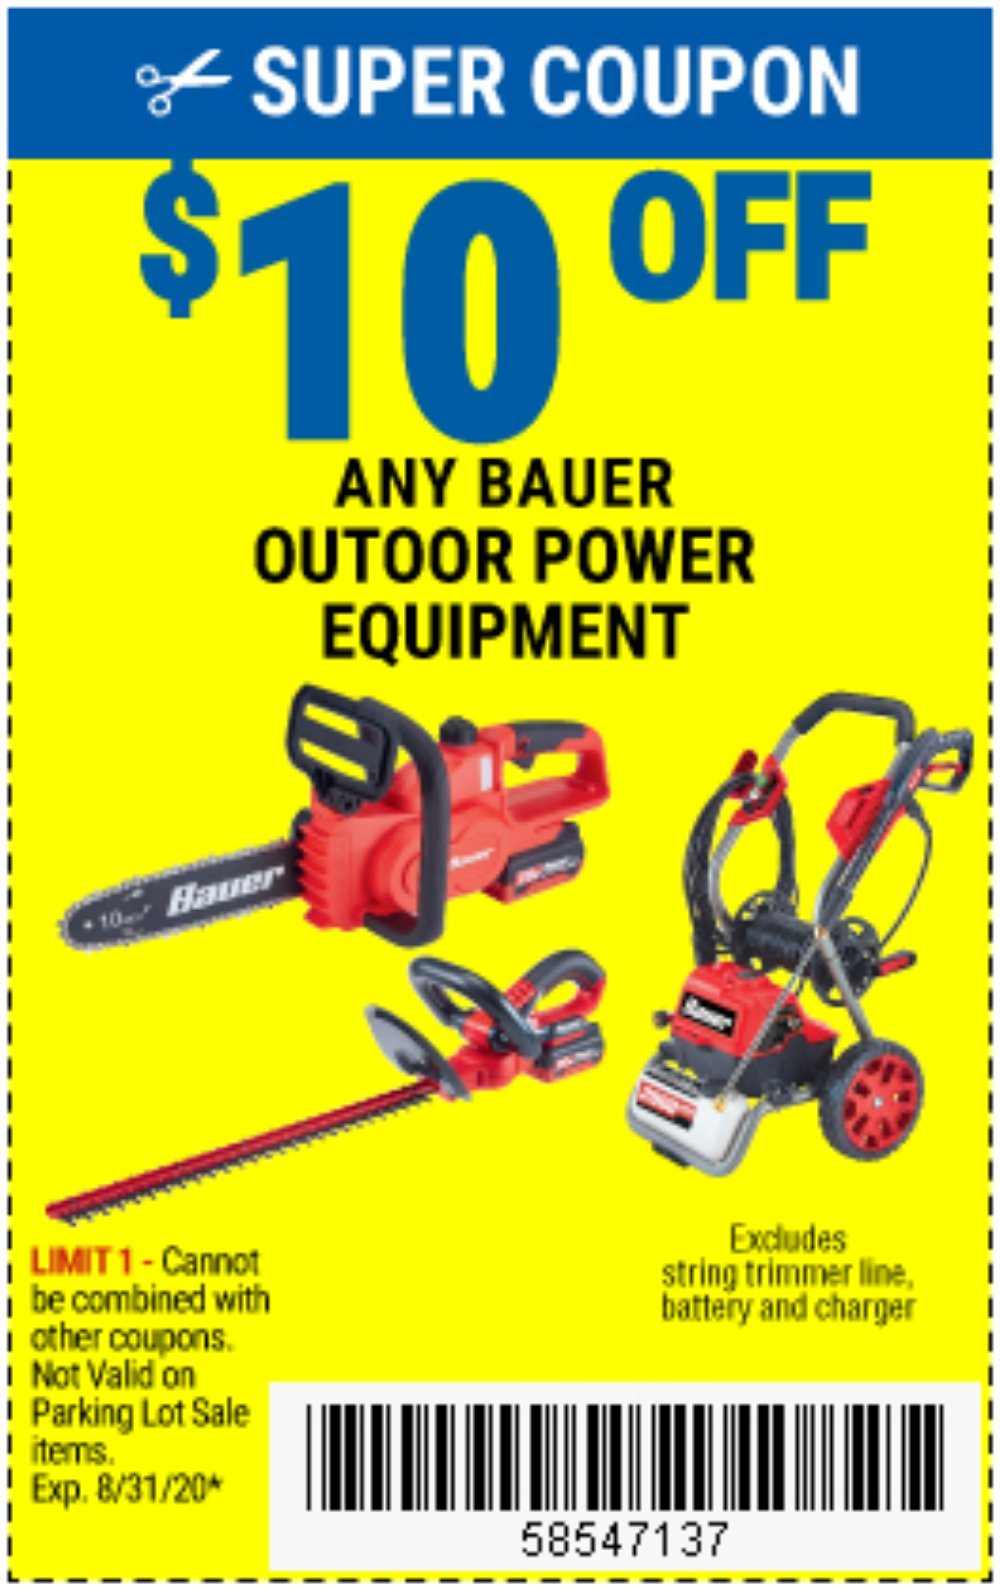 Harbor Freight Coupon, HF Coupons - $10 off Bauer